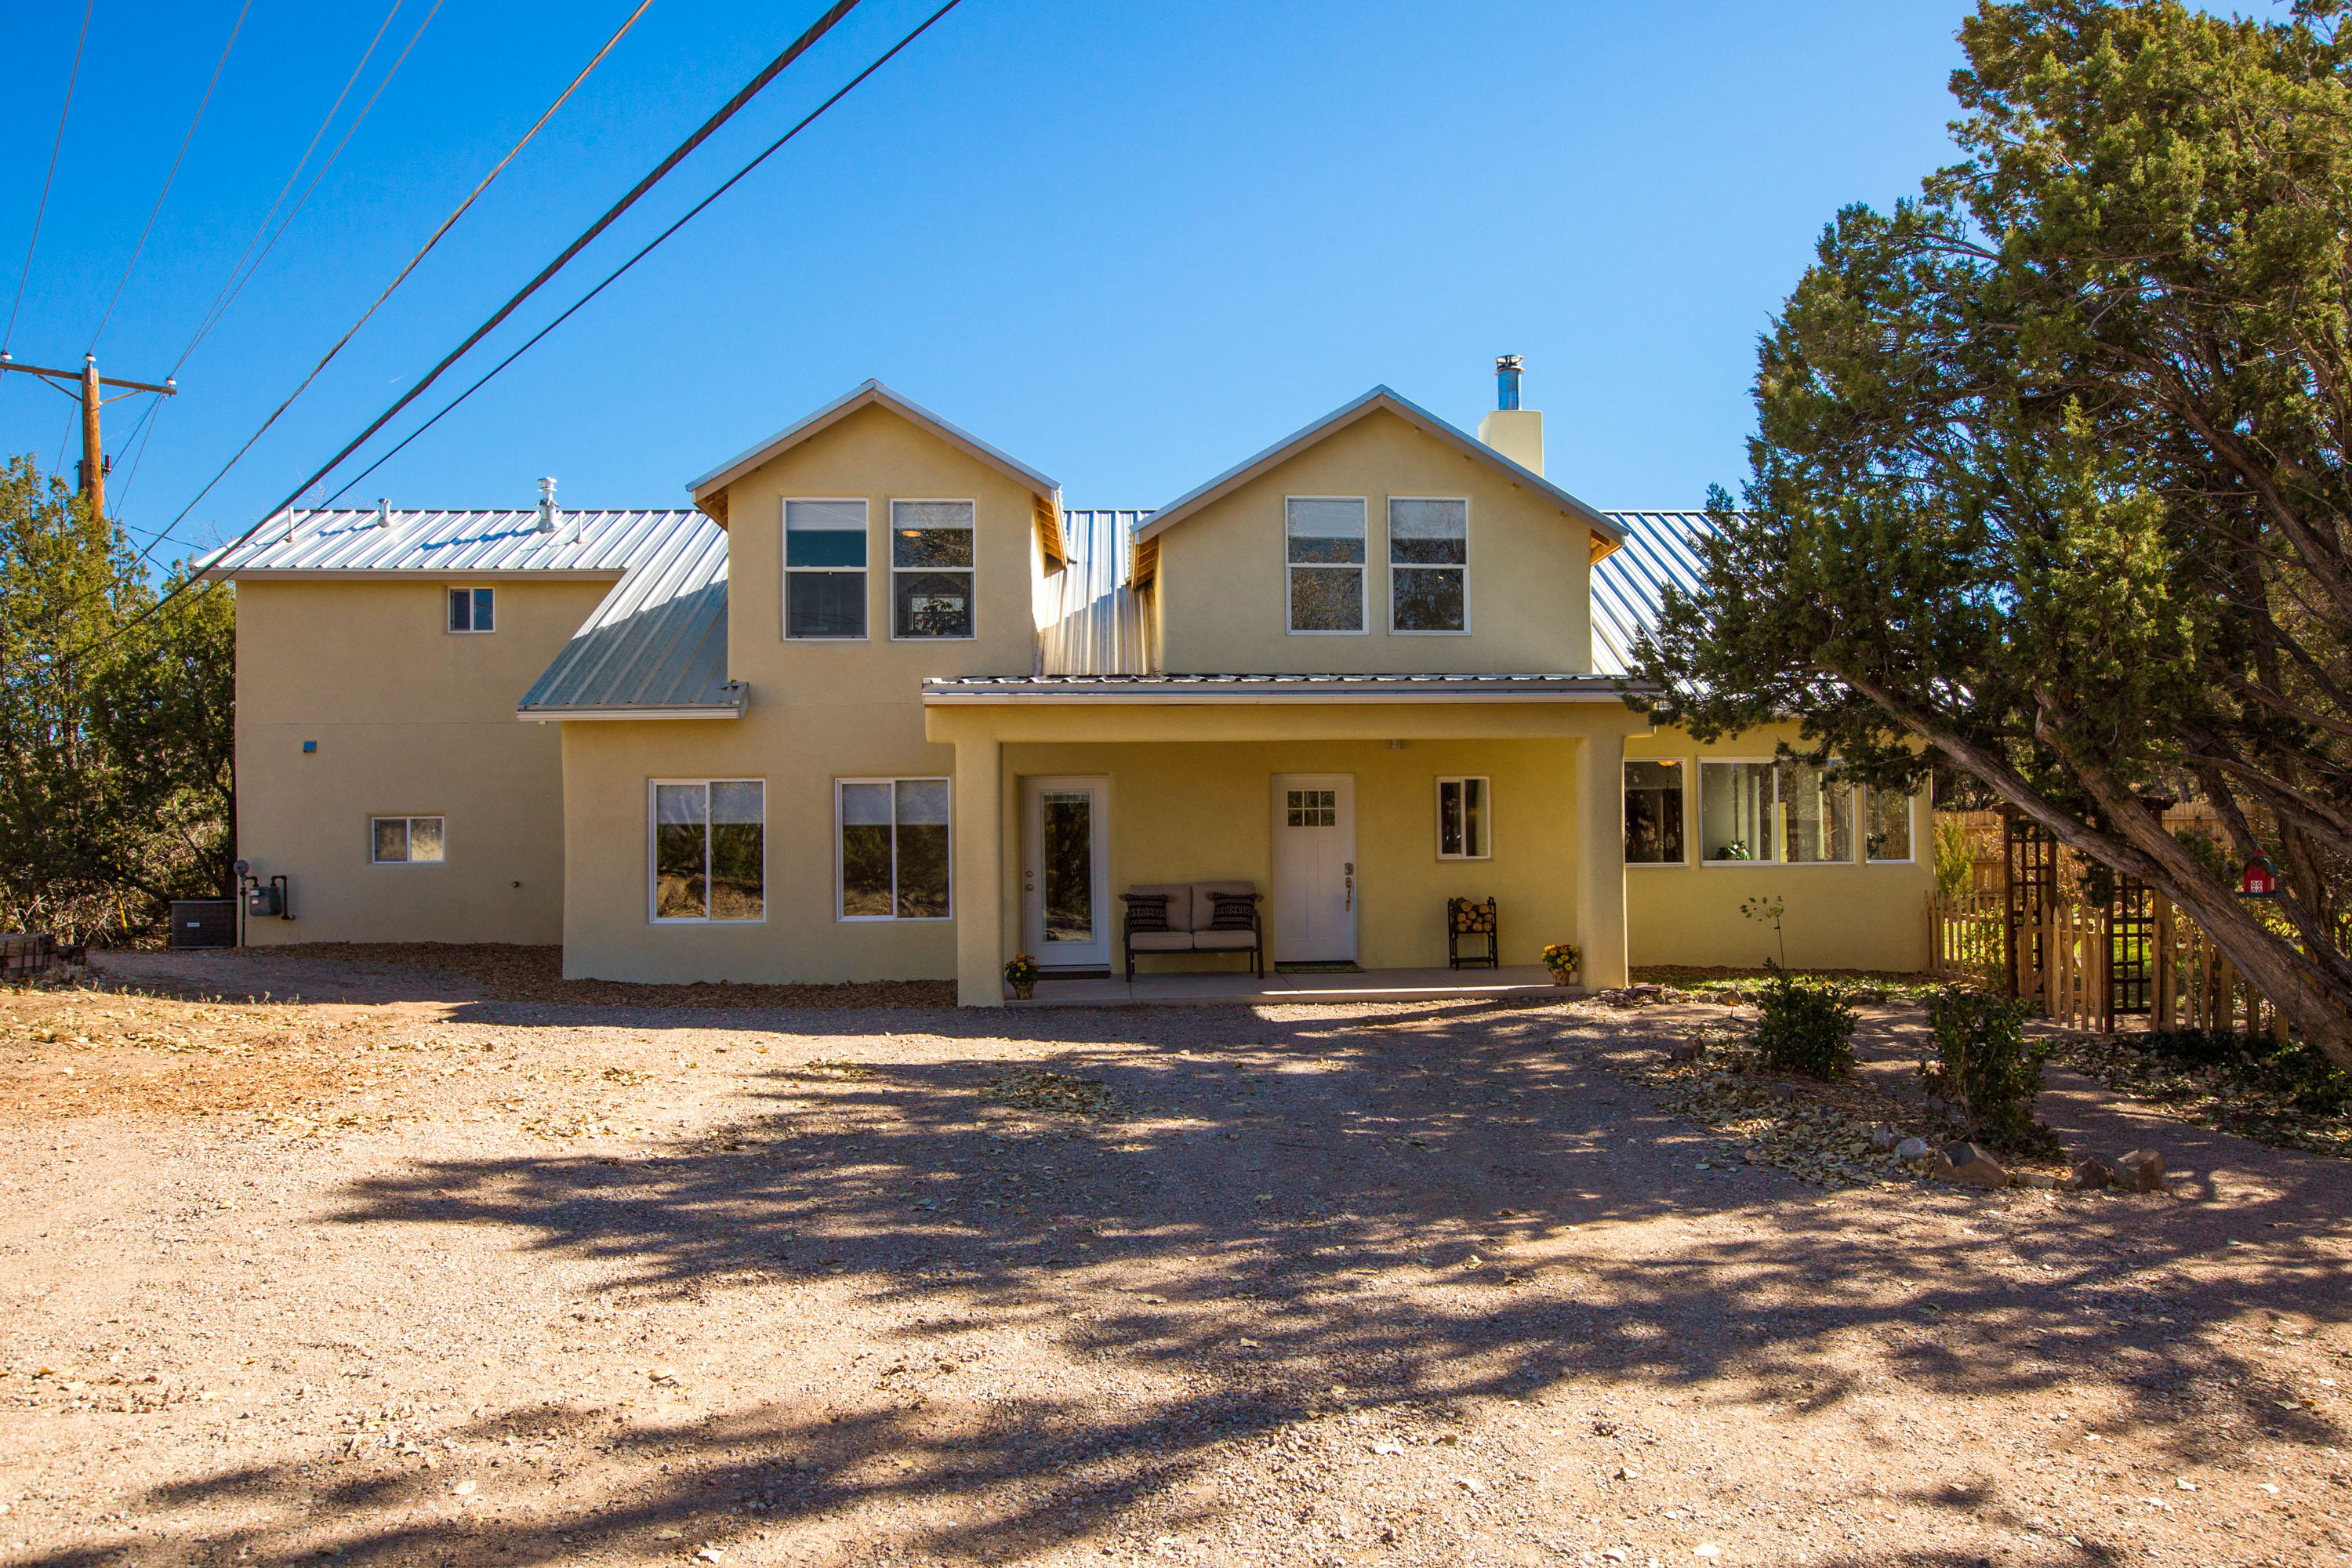 This Northern New Mexico style home was completely rebuilt and expanded, with permits and a new Certificate of Occupancy, in 2018.  Originally constructed in 1960, the remodel of this adobe and frame-built home has assimilated new style elements of today with the home's original charm. The roof to slab remodel includes: the addition of a 2nd story with pitched metal roof, 12'' ceiling supports, 2'' foam surrounding entire home, spray foam ceiling, guest bath with steam shower, RO water system, water softener, whole house water filter, hot water recirculation pump, new water heater and to 2 refrigerated air units, and 2 central forced air natural gas furnaces. Please click ''More'' for additional information on this incredible home . . .